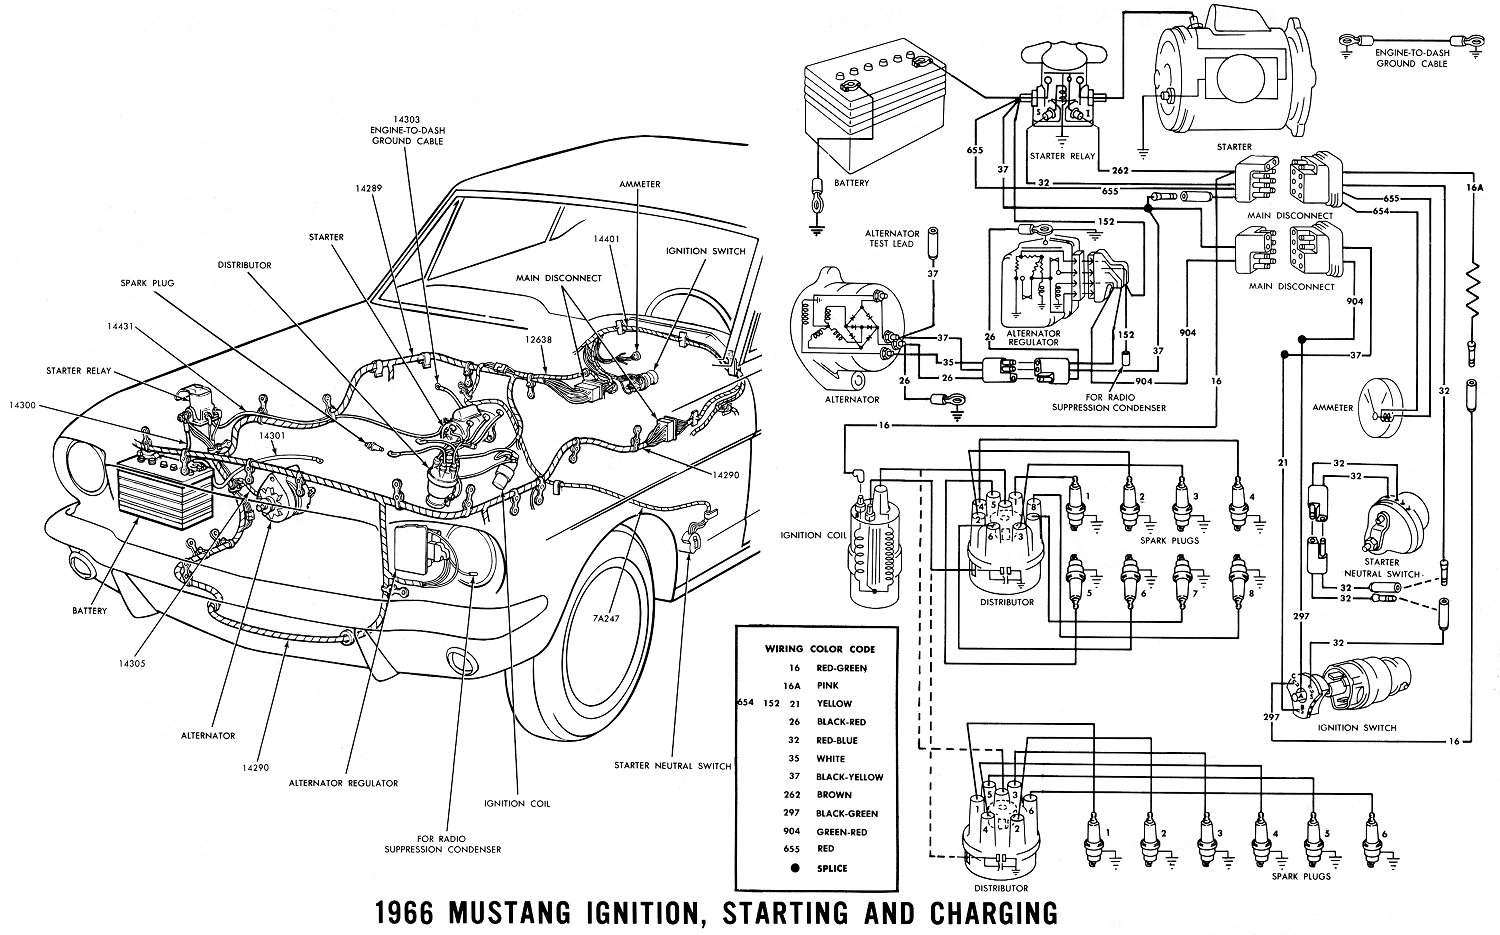 66ignit 1966 mustang wiring diagrams average joe restoration ford mustang wiring diagram at cos-gaming.co